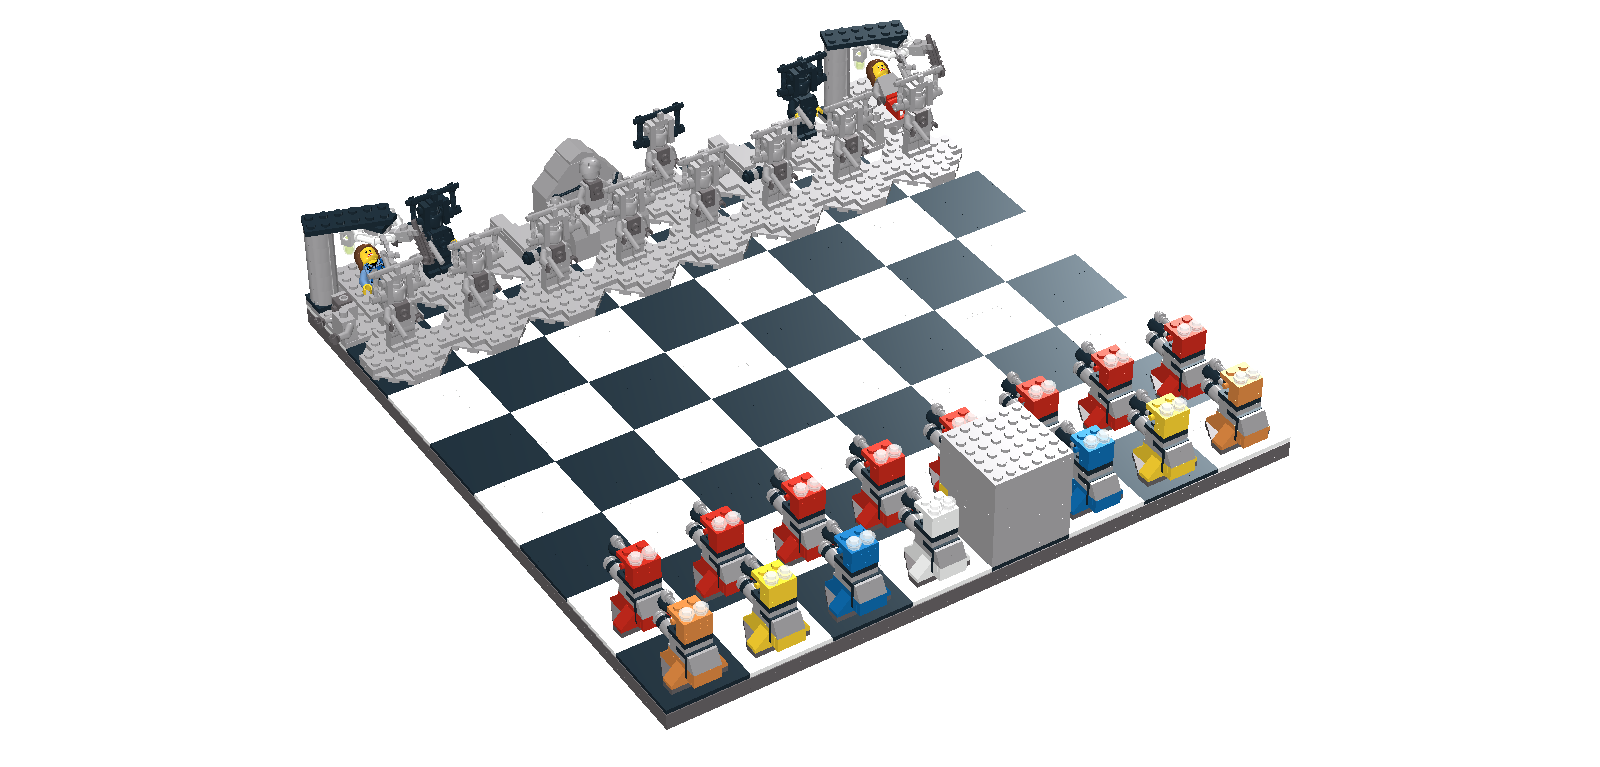 Best Ldd Doctor Who Chess Set By With Designer Chess Sets